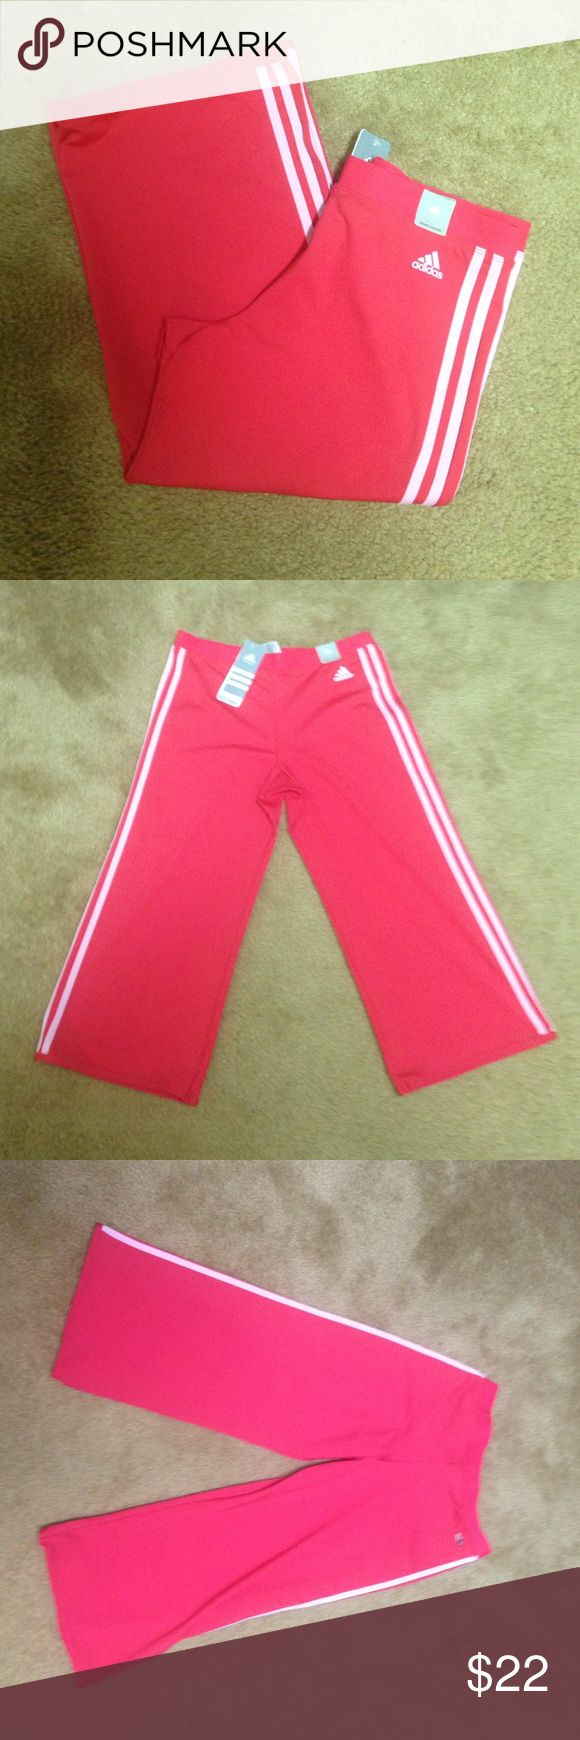 Adidas new coral capris Adidas new pink with white stripe down sides.  Brand new with tags never worn.  No pockets.  Slim fit. Adidas Pants Capris